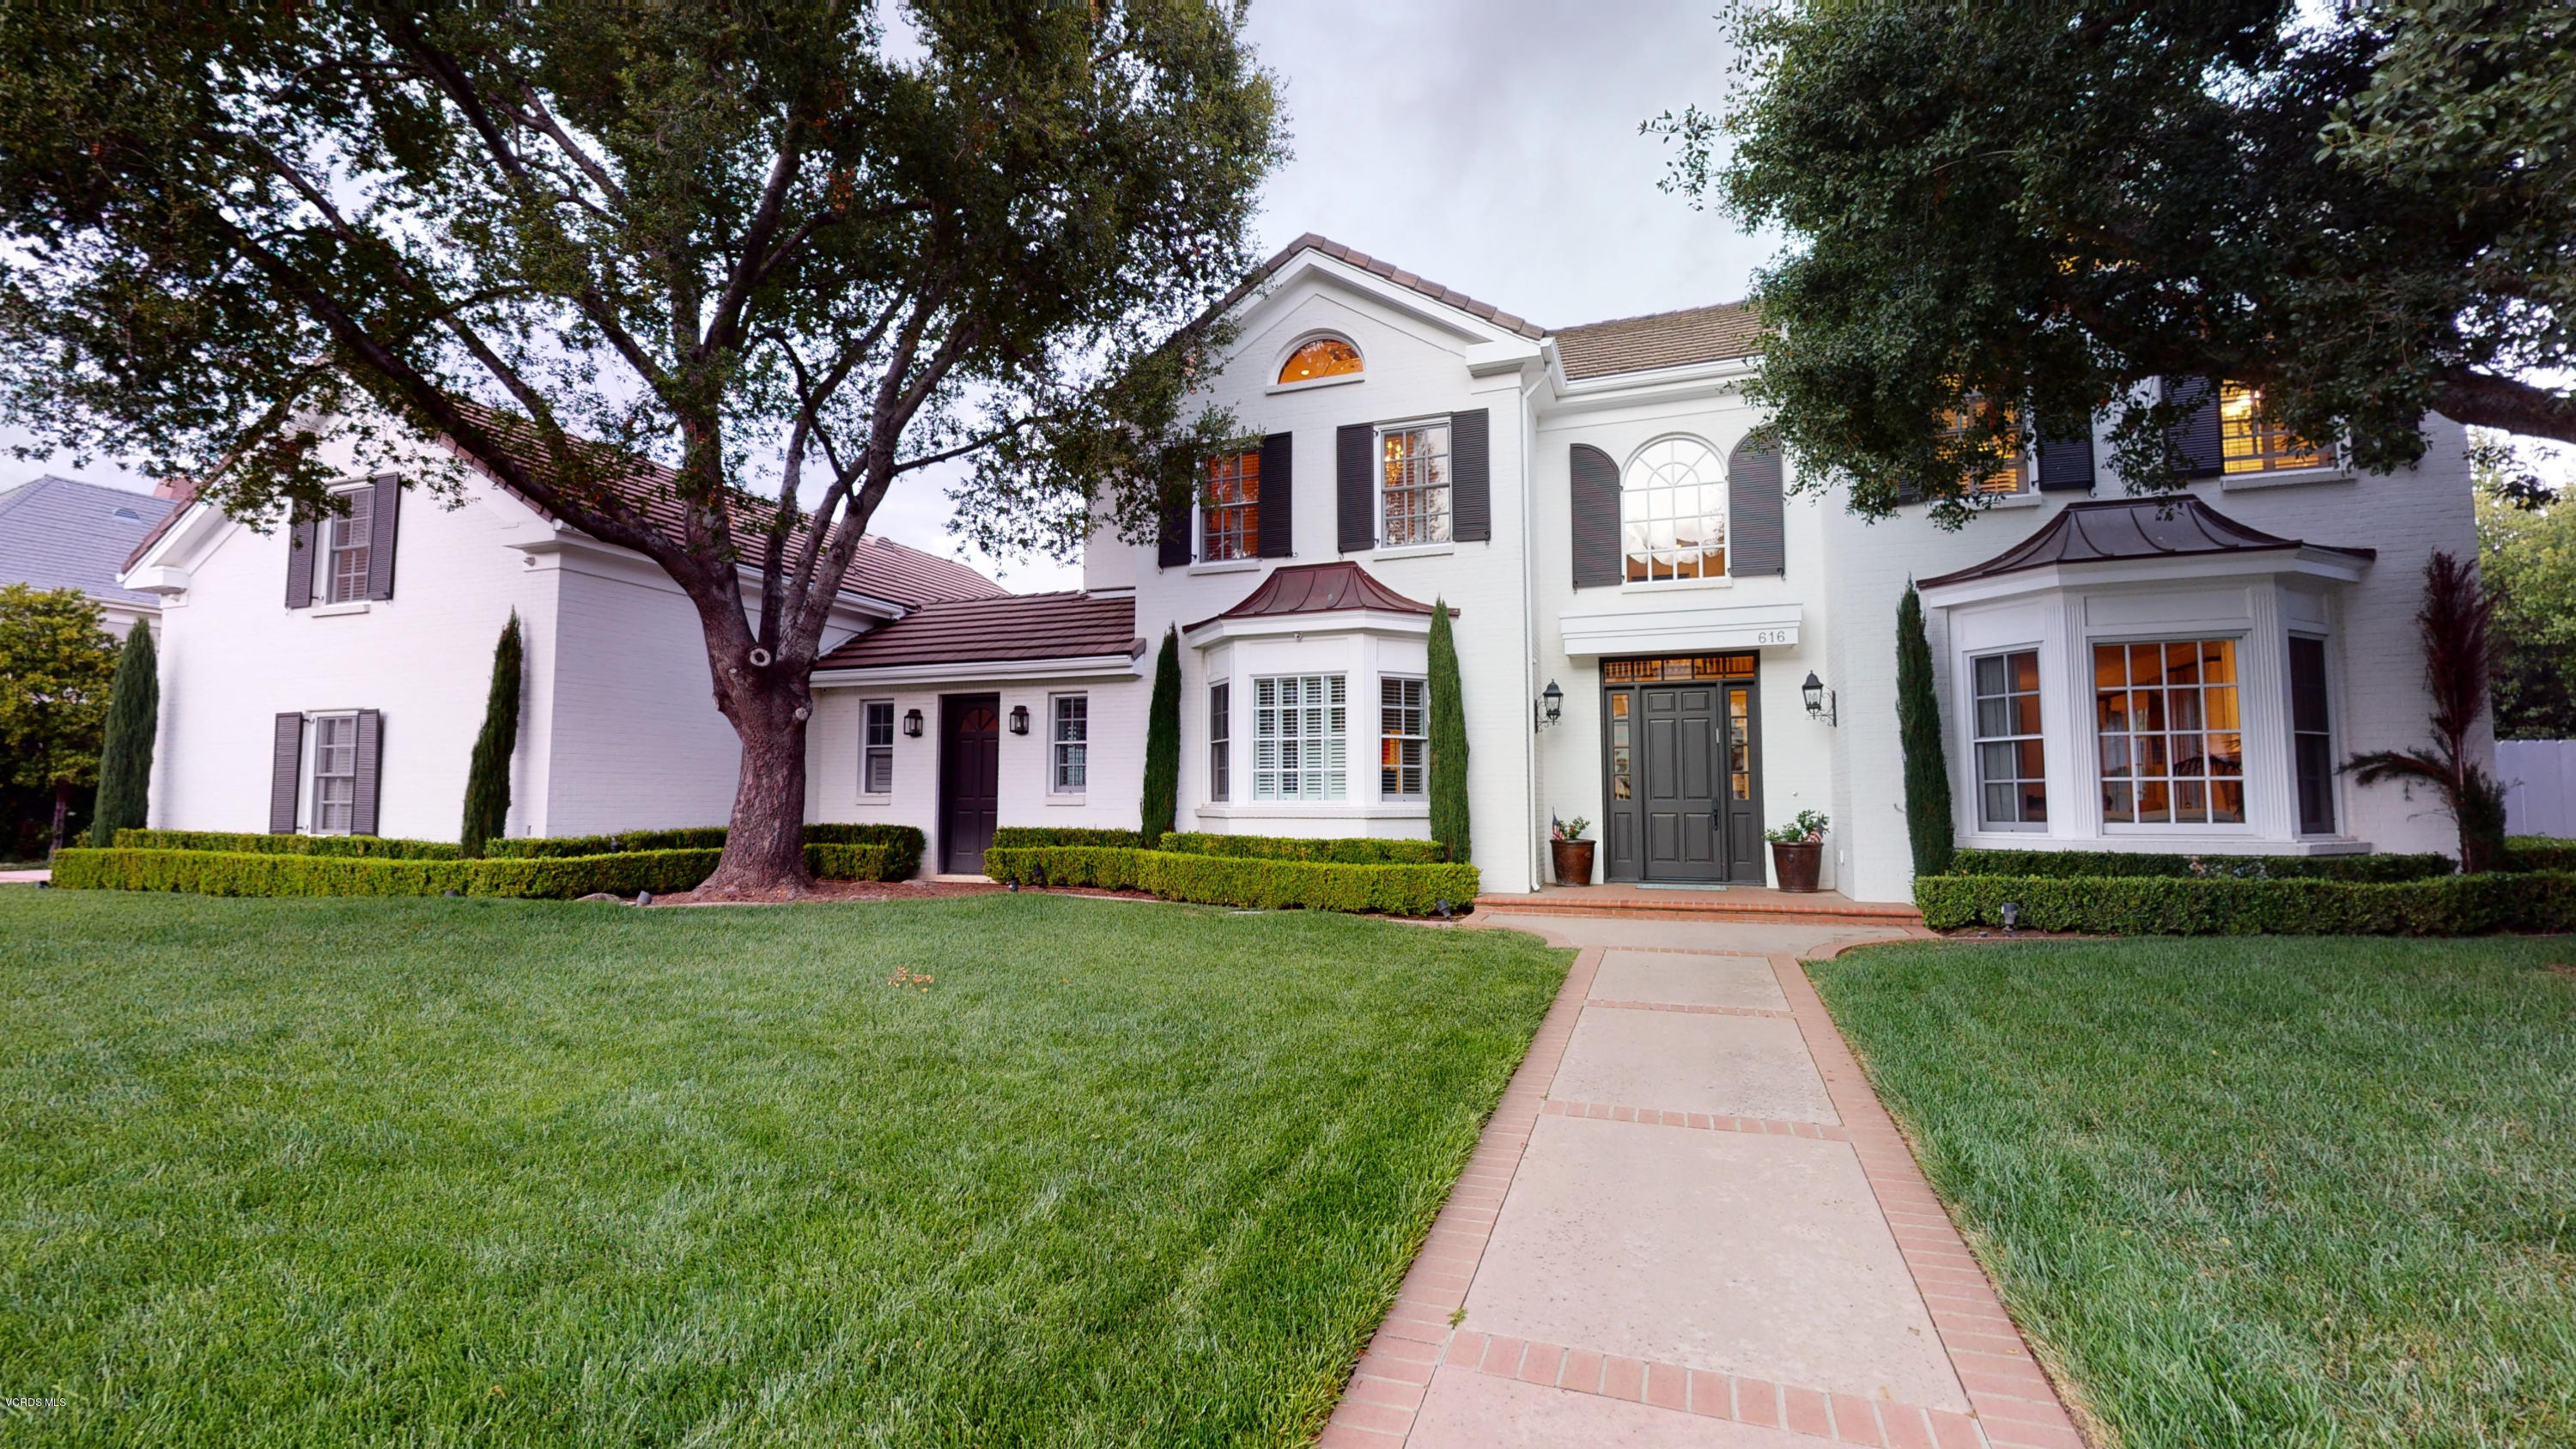 Photo of 616 W Stafford Road, Thousand Oaks, CA 91361